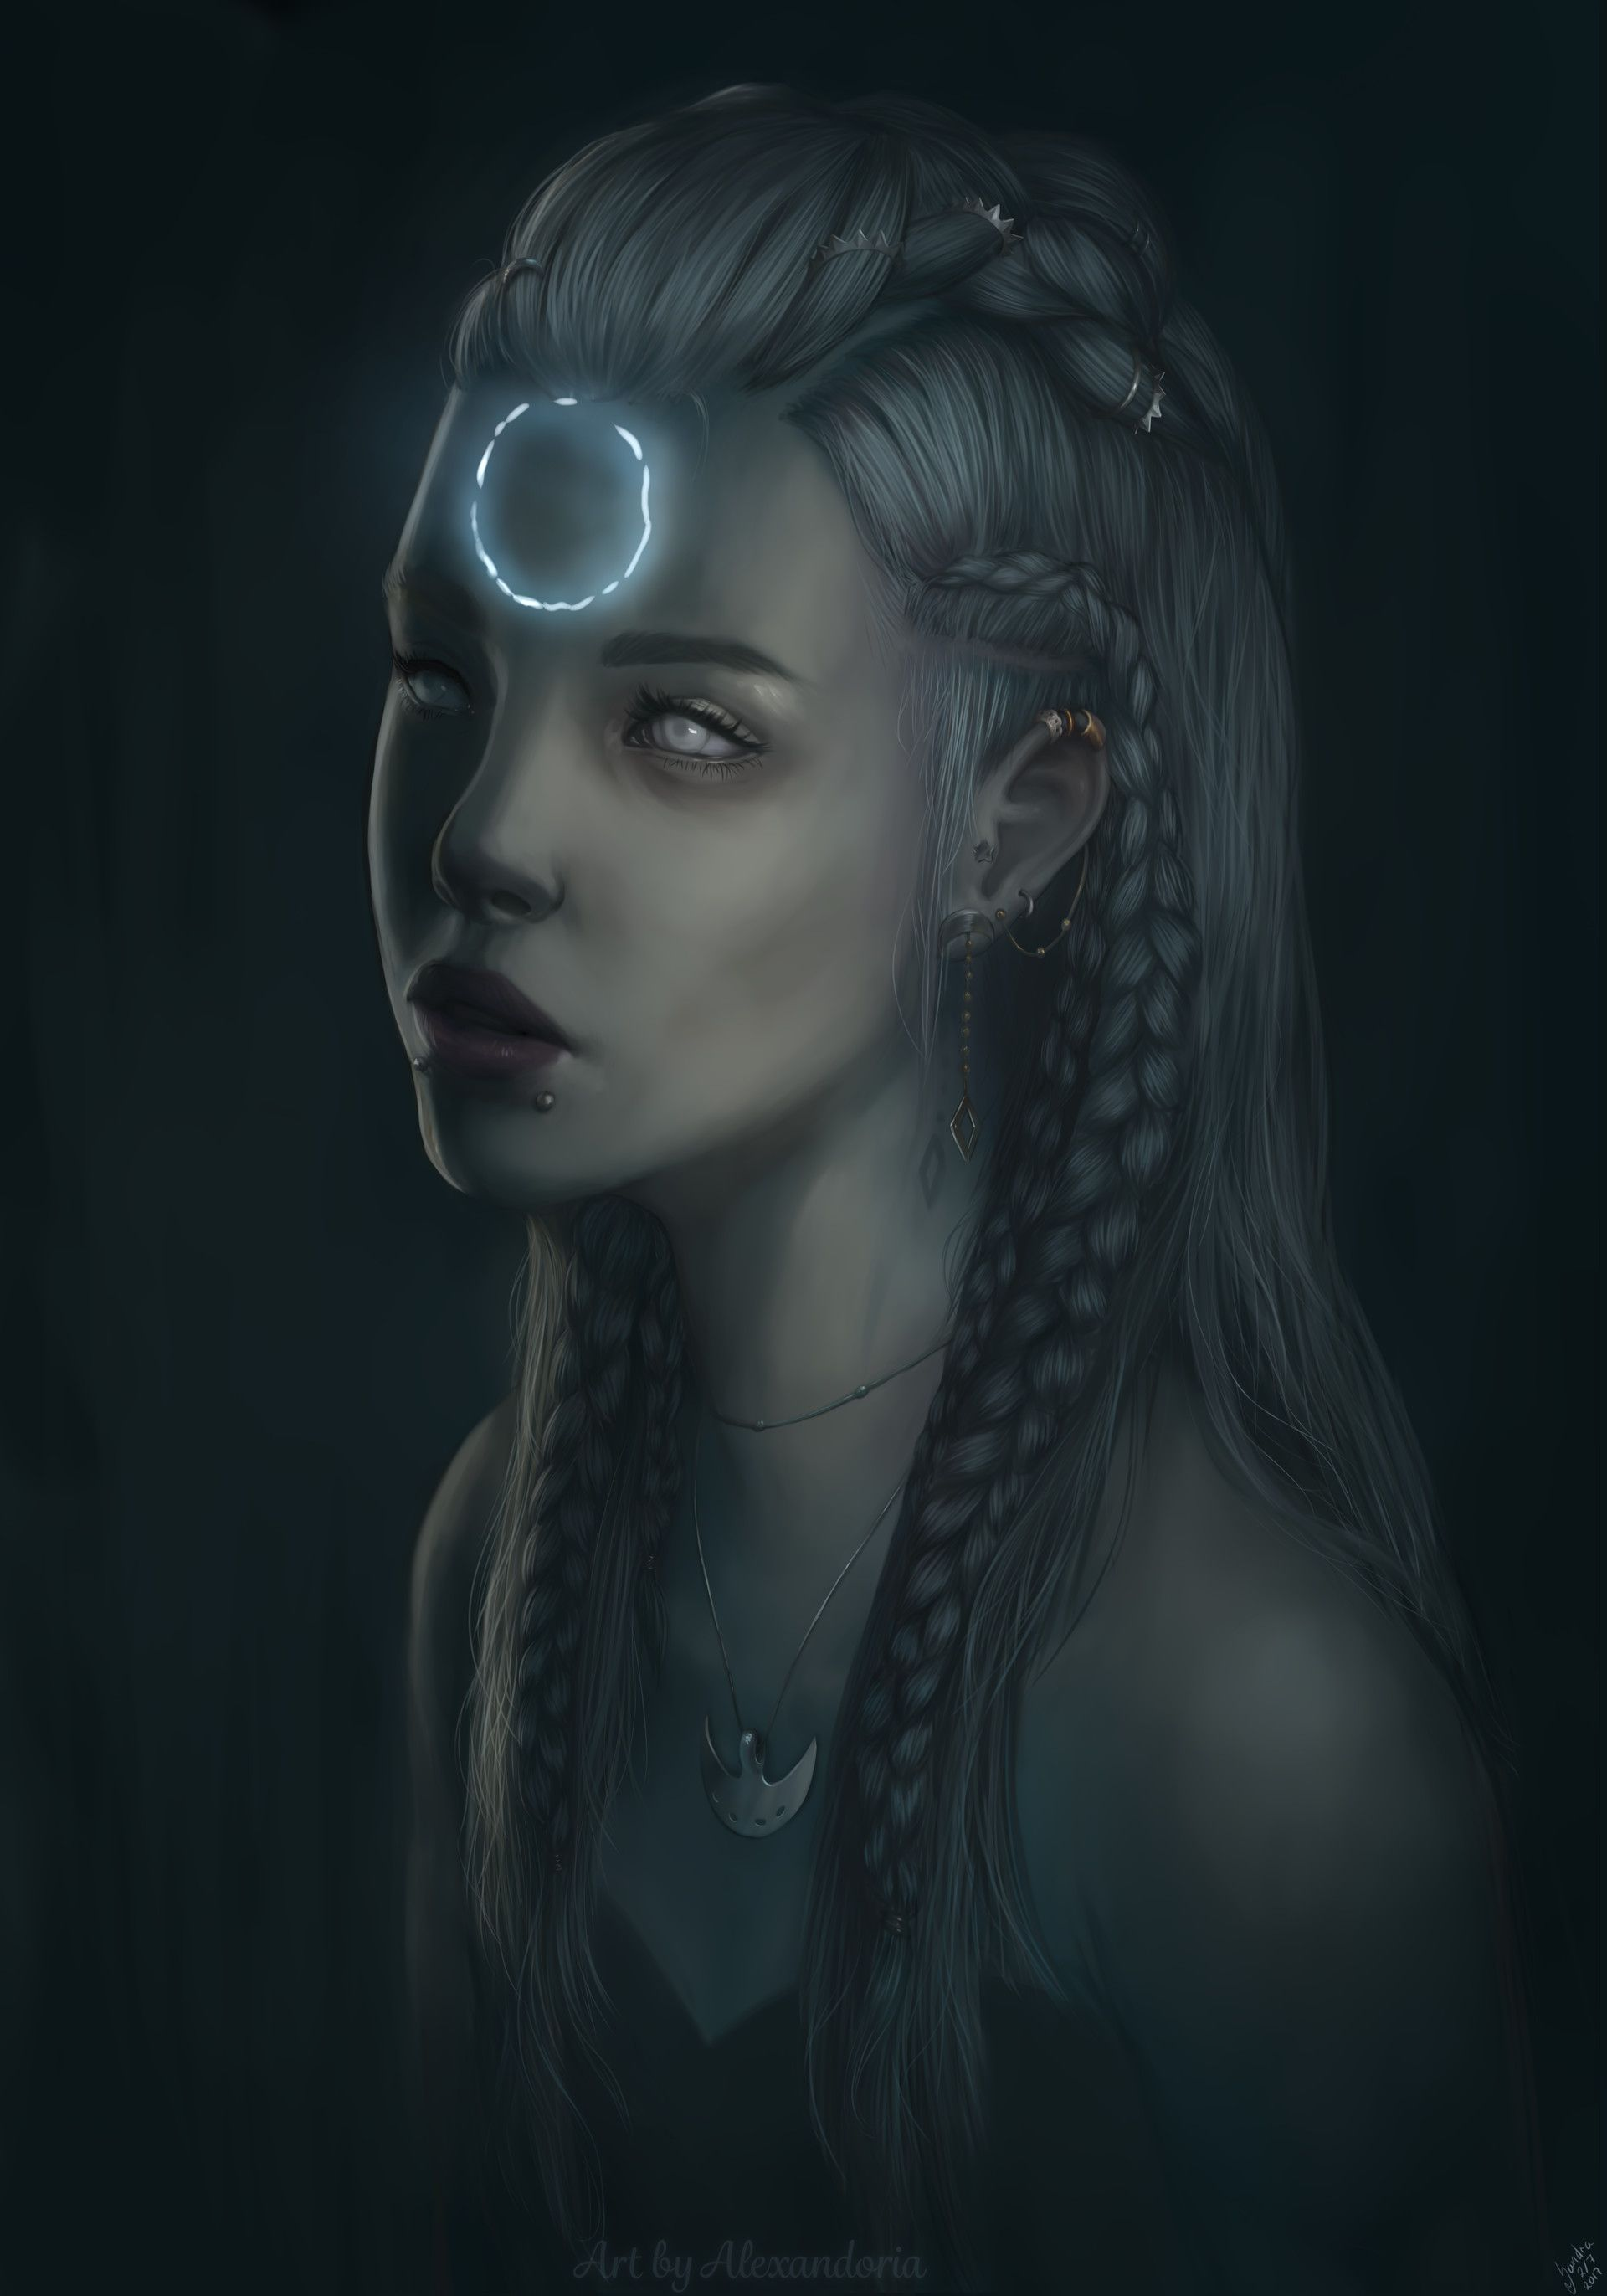 Artstation - Forgetting Sandra Hansen Throne Of Glass Forget Characters And Rpg